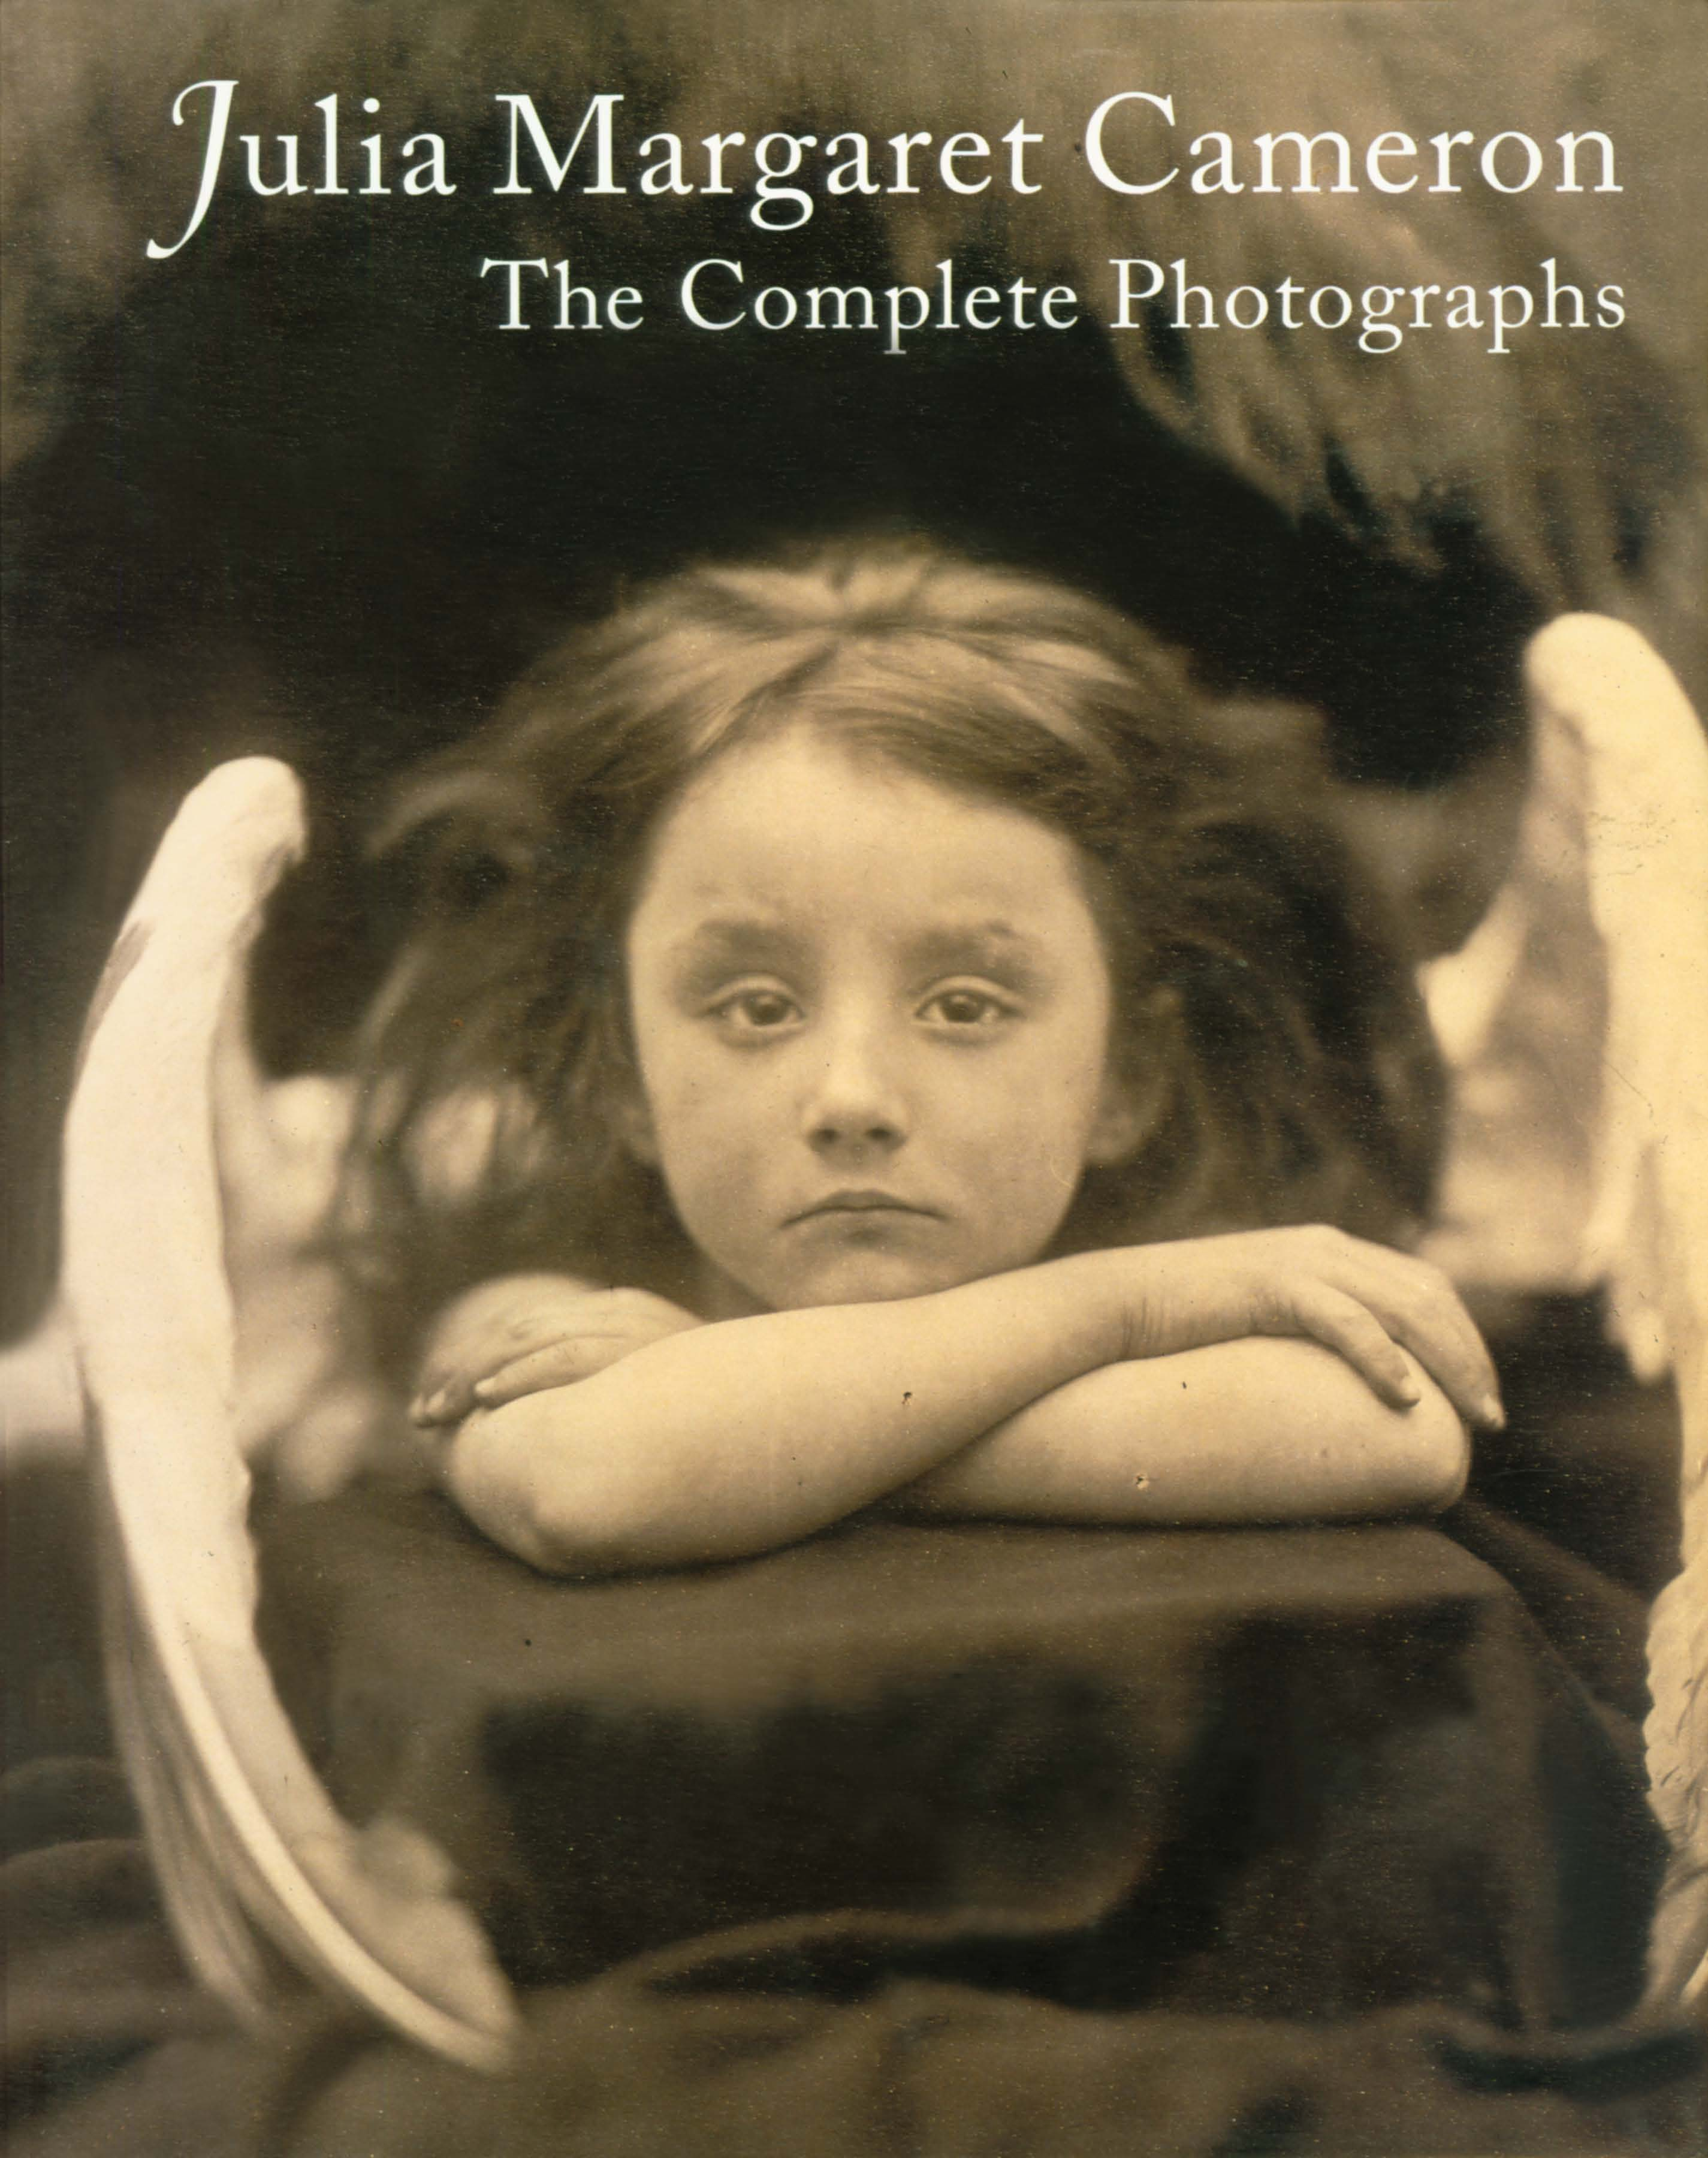 Julia Margaret Cameron: Complete Photographs  Julian Cox, Colin Ford, Joanne Lukitsh, Philippa Wright  2002